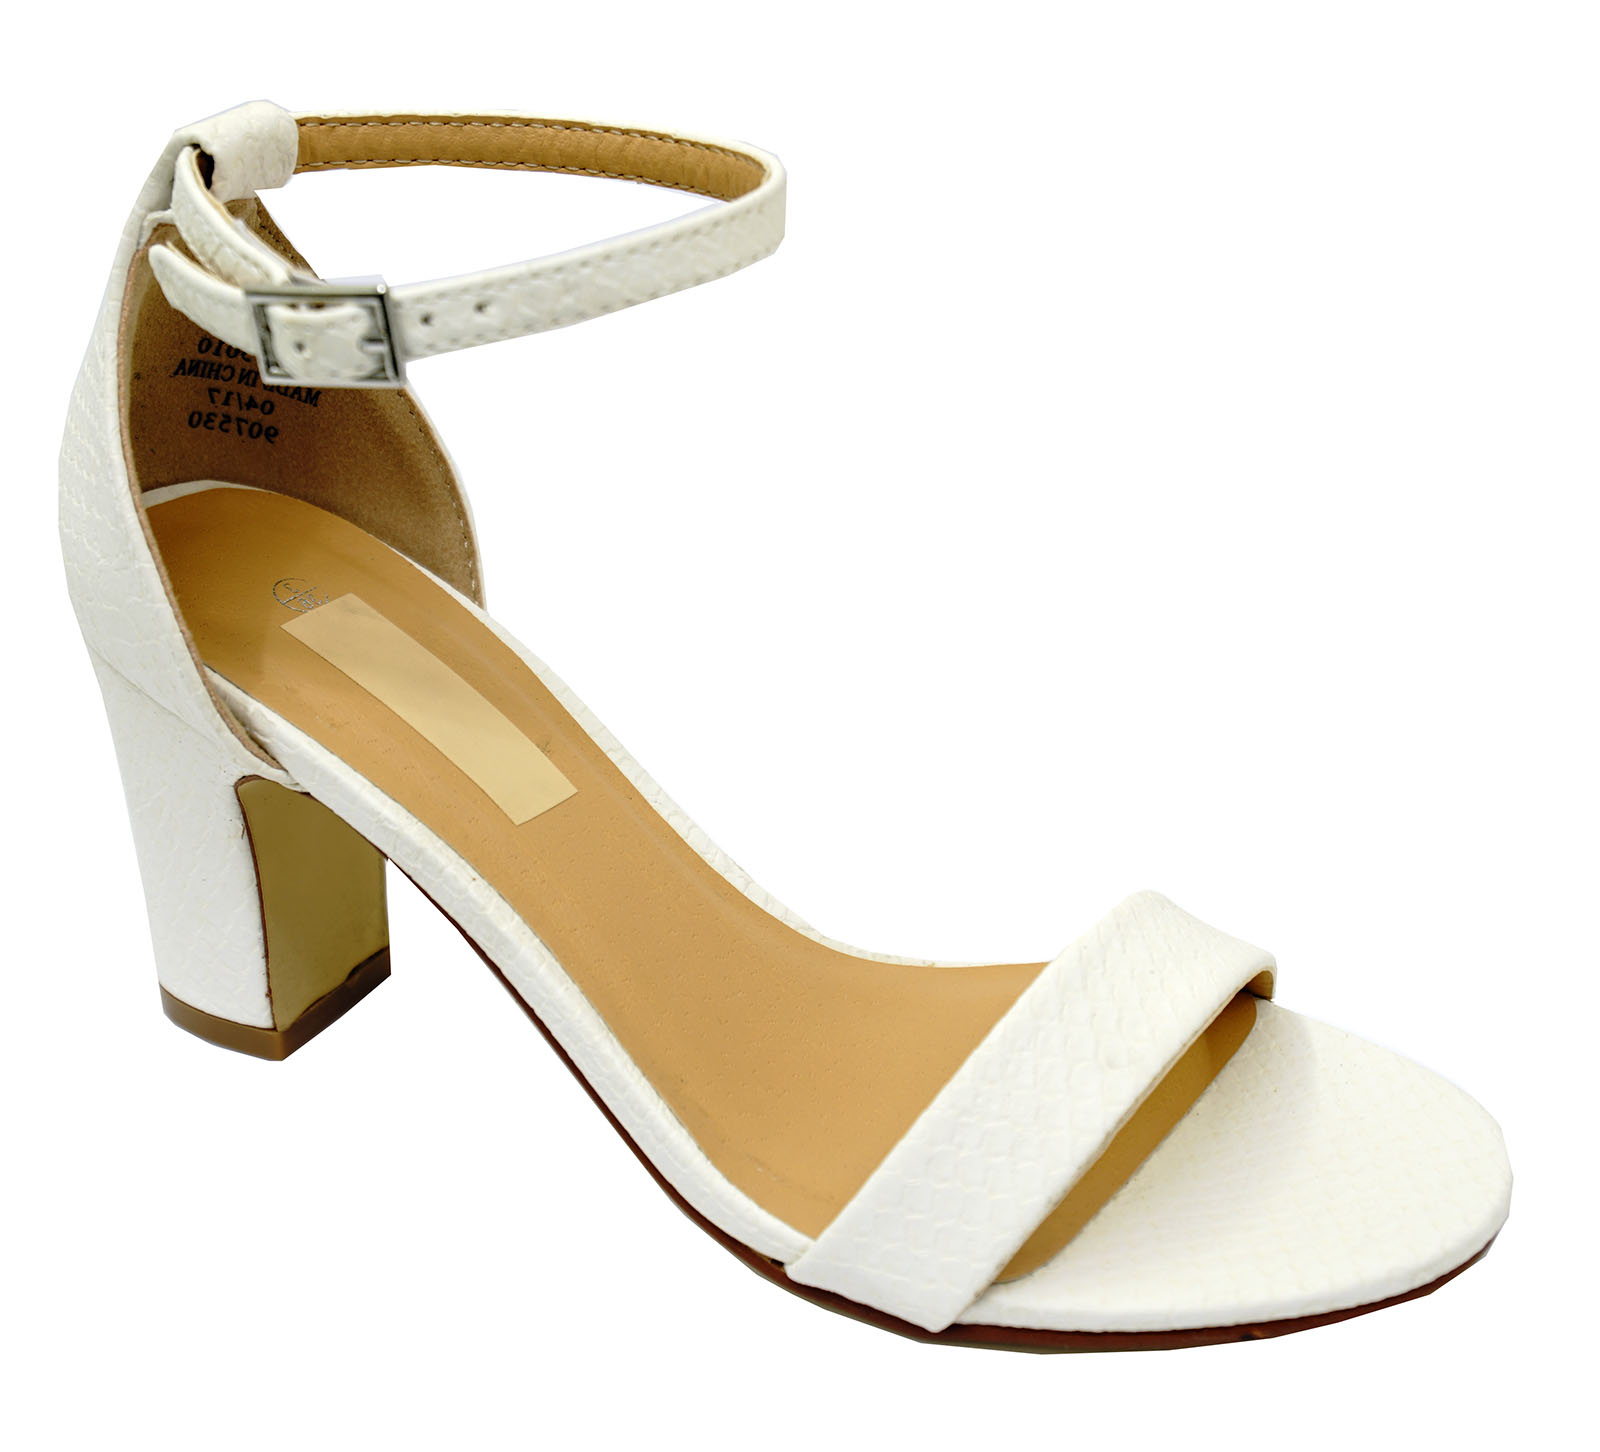 LADIES-WHITE-ANKLE-STRAP-BLOCK-HEEL-PEEPTOE-SANDALS-HOLIDAY-COMFY-SHOES-UK-3-8 thumbnail 23